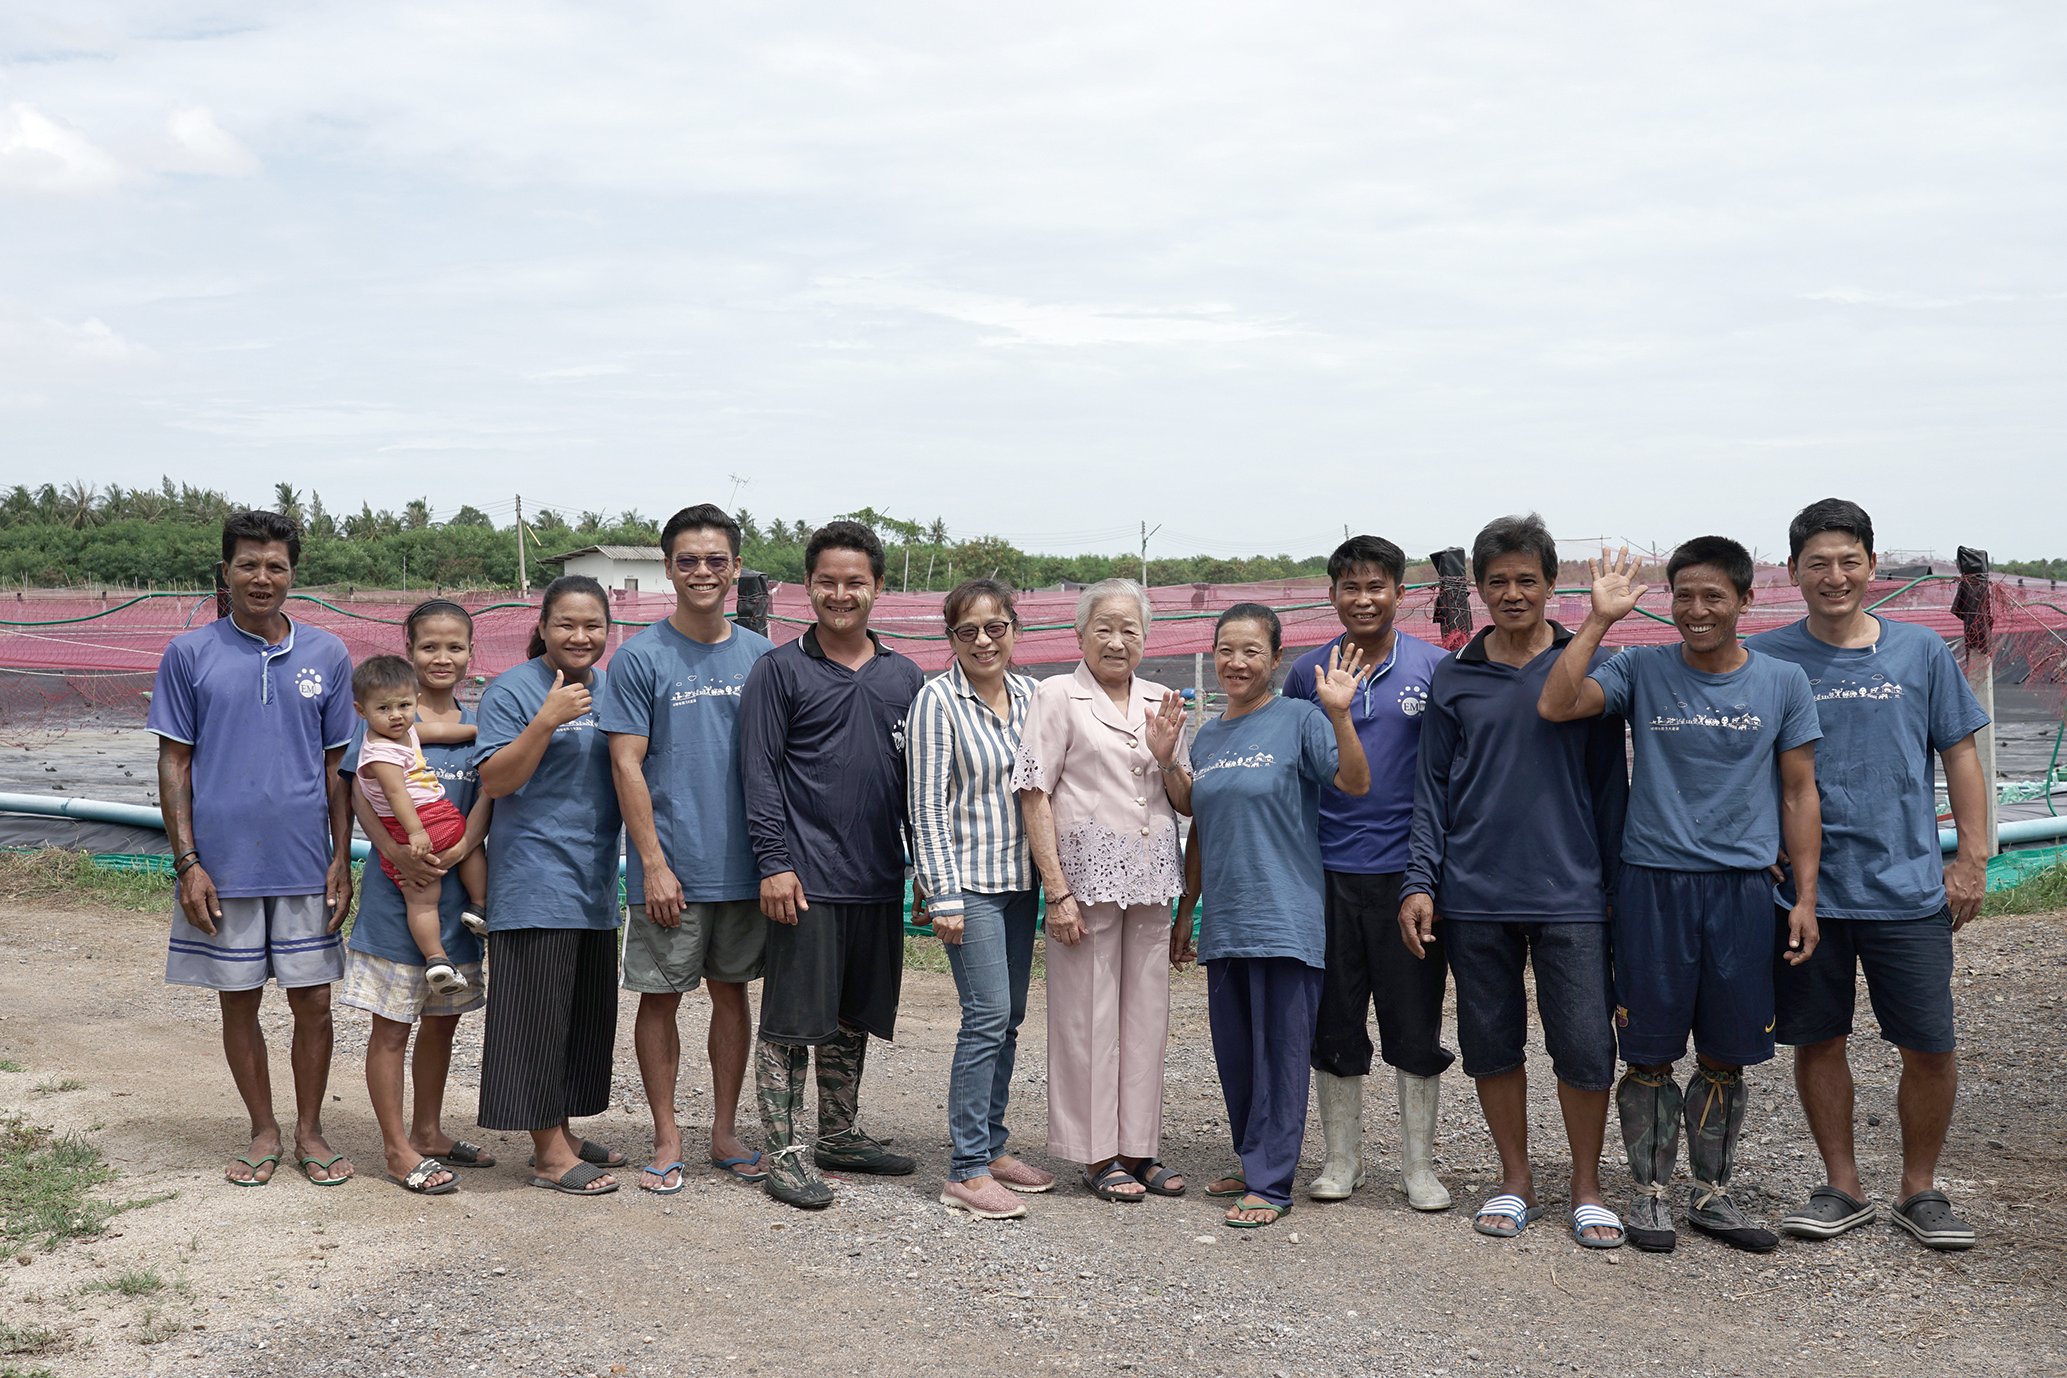 Ms. Nittaya and her farm staff